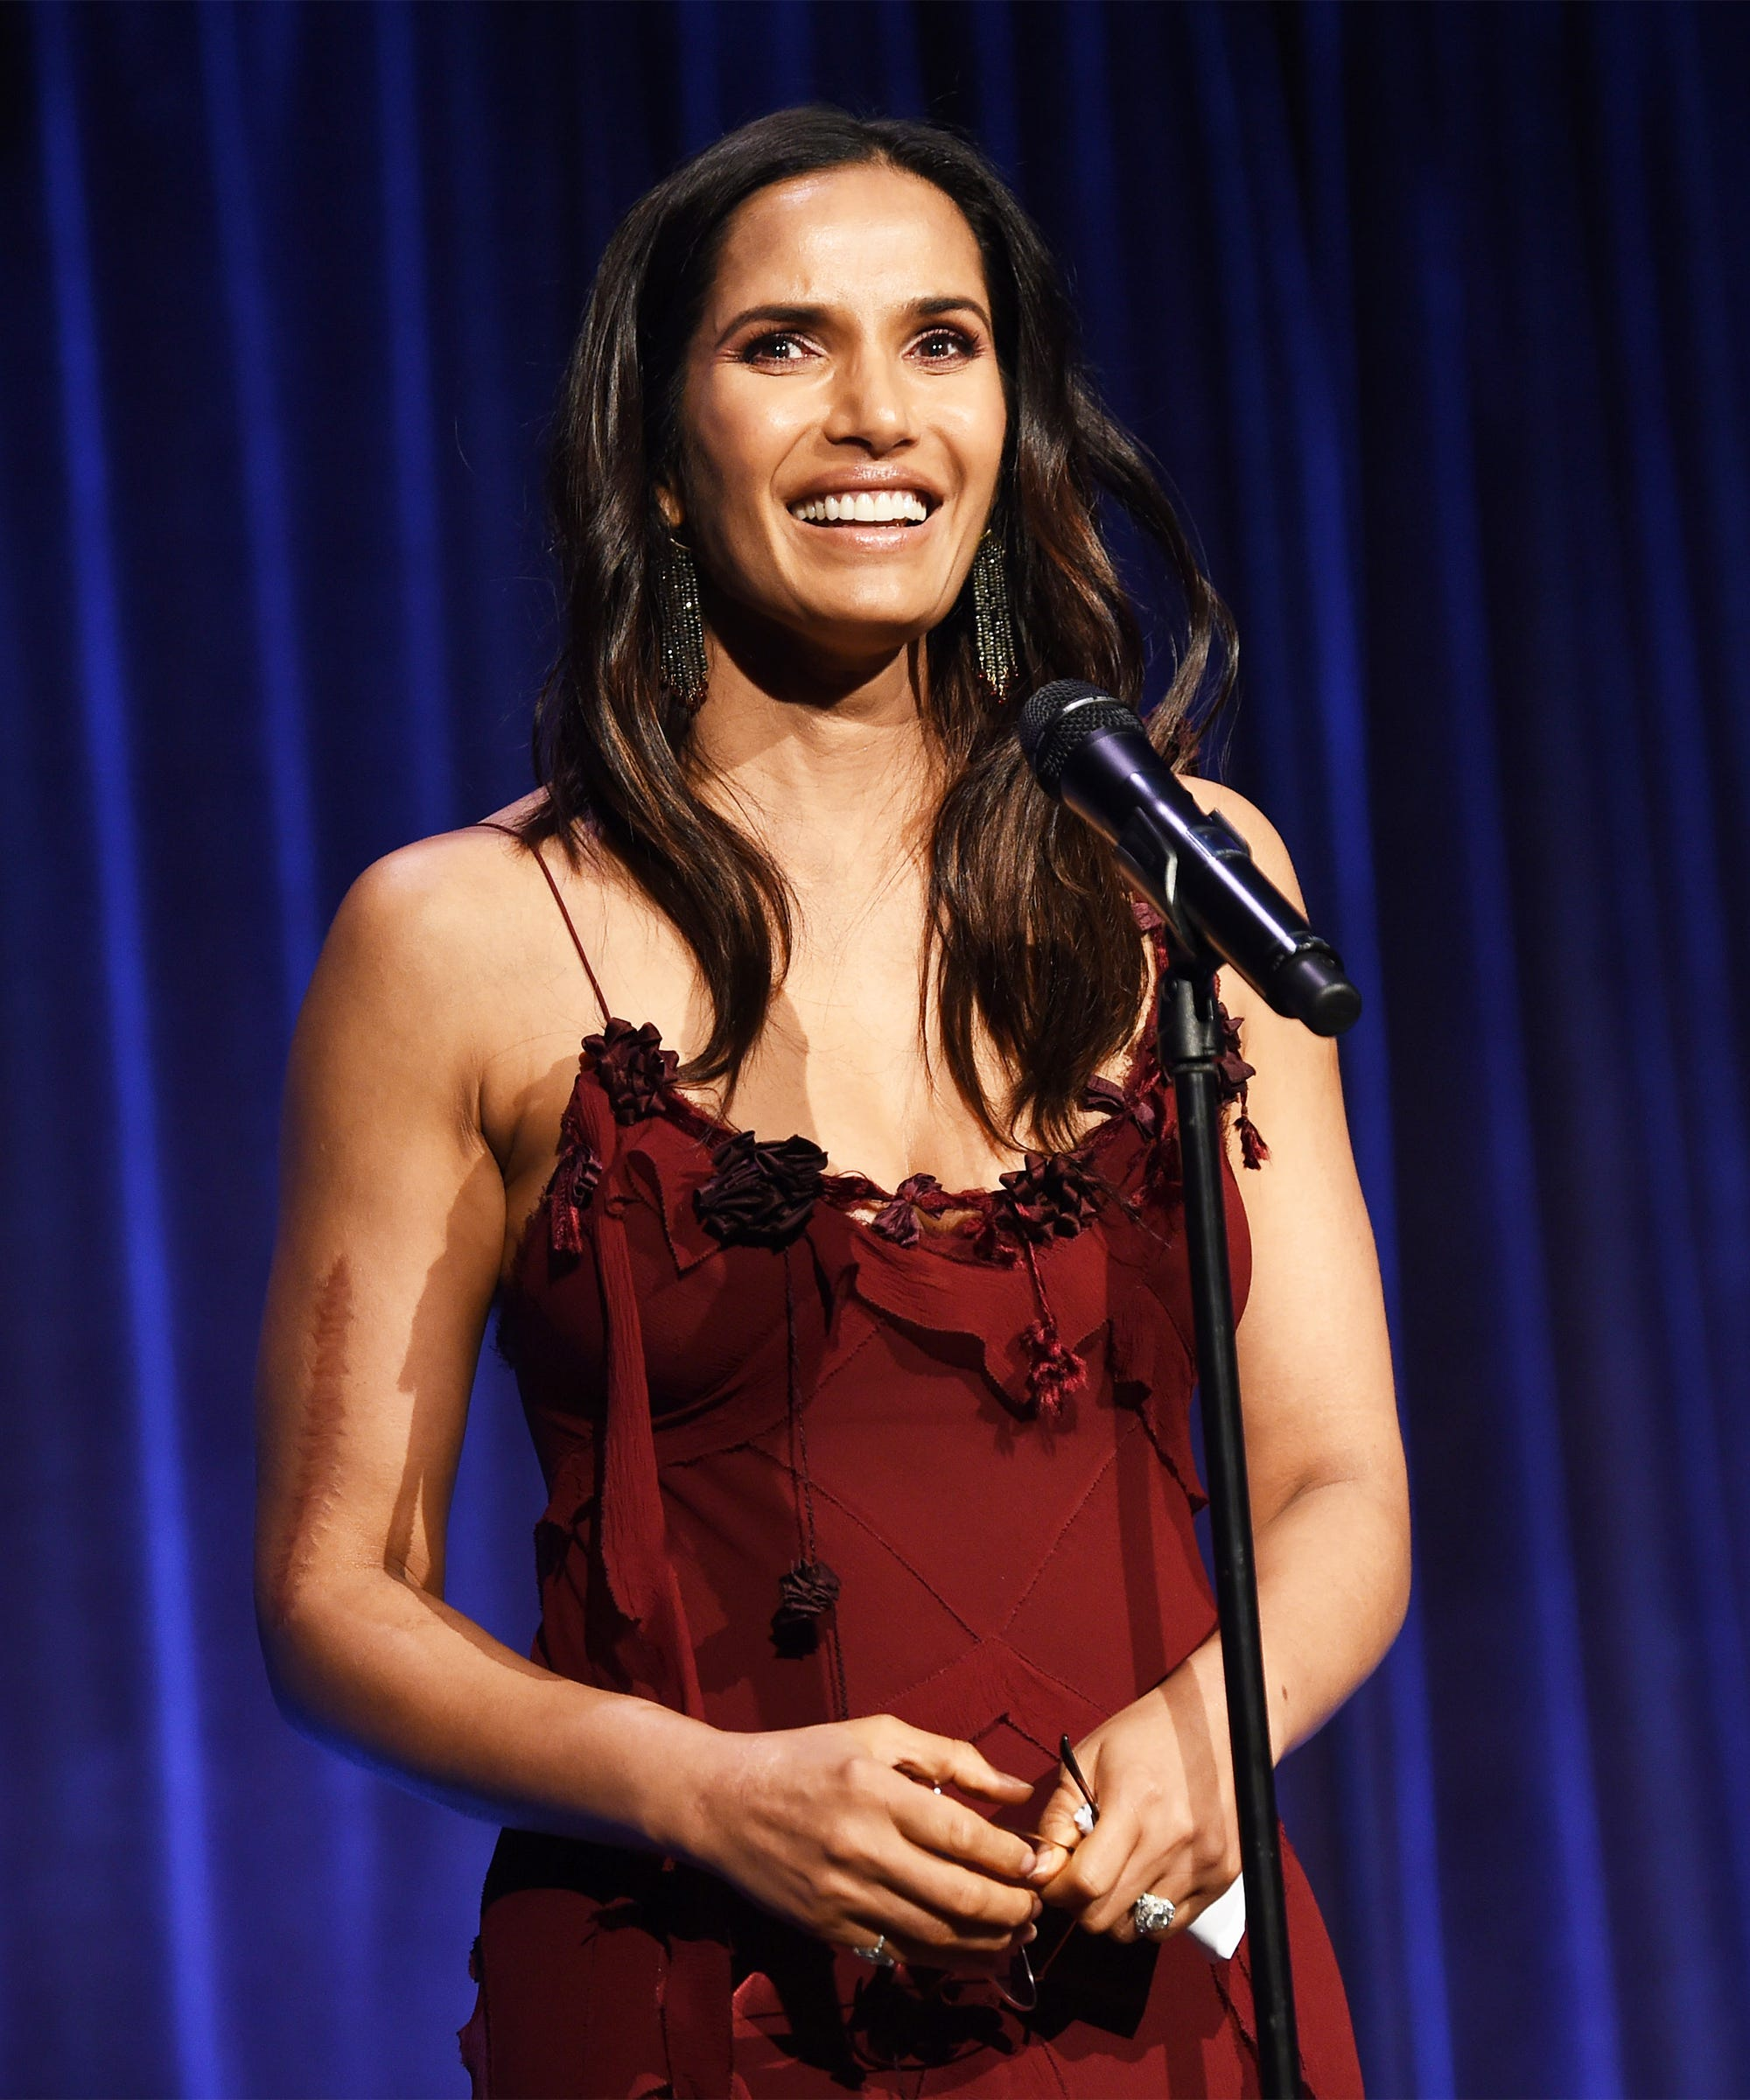 Padma Lakshmi Was One Of The First Celebs To Raise Endometriosis Awareness. Now She Asks: What's Next?